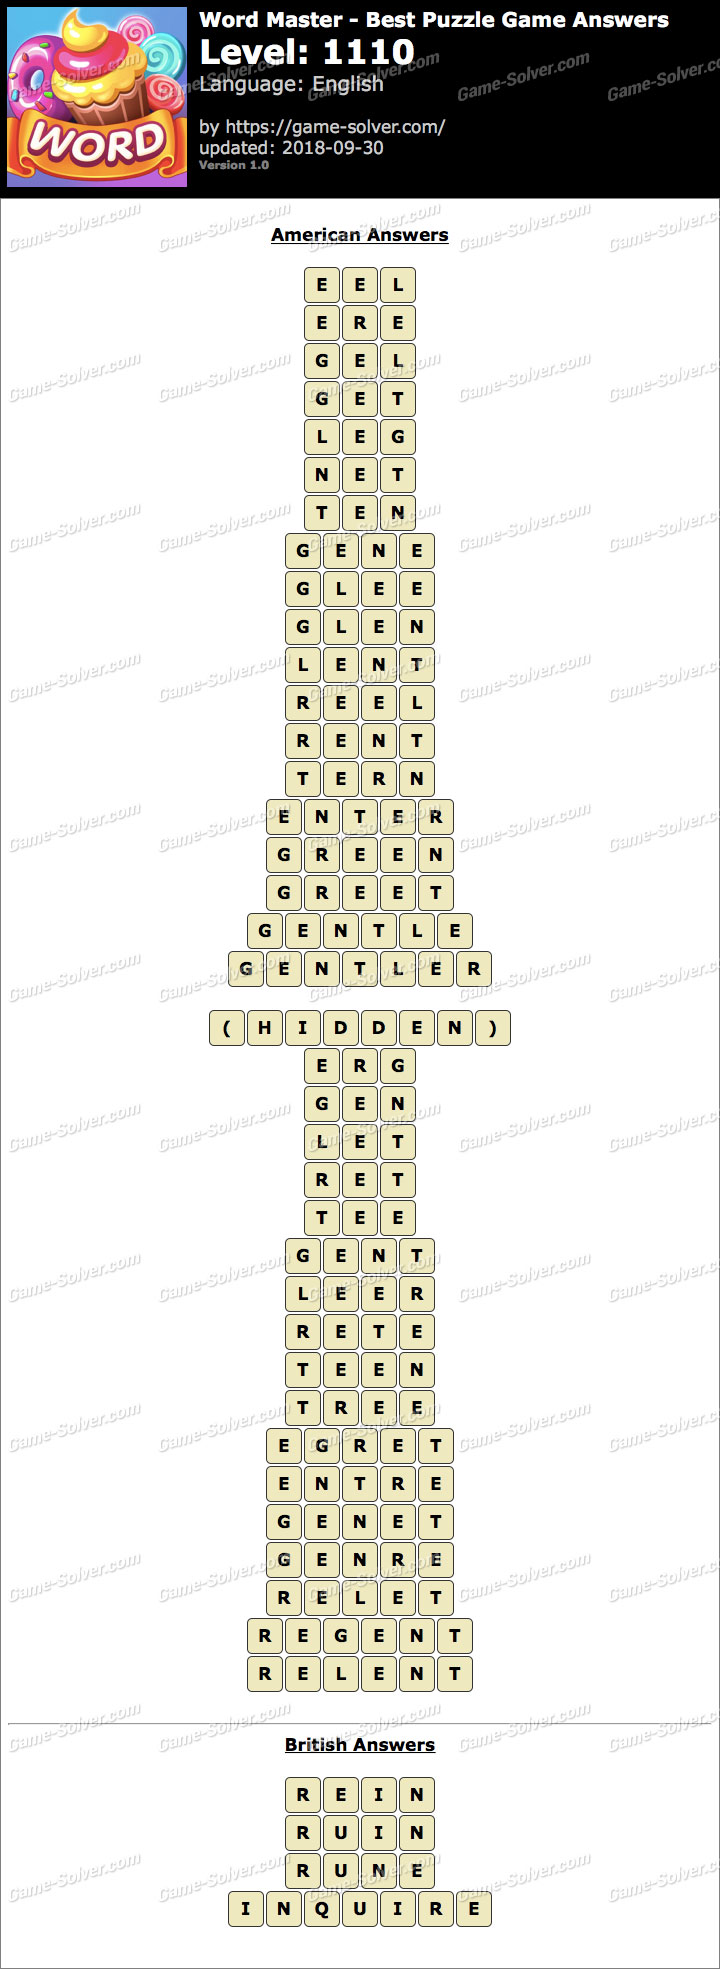 Word Master-Best Puzzle Game Level 1110 Answers